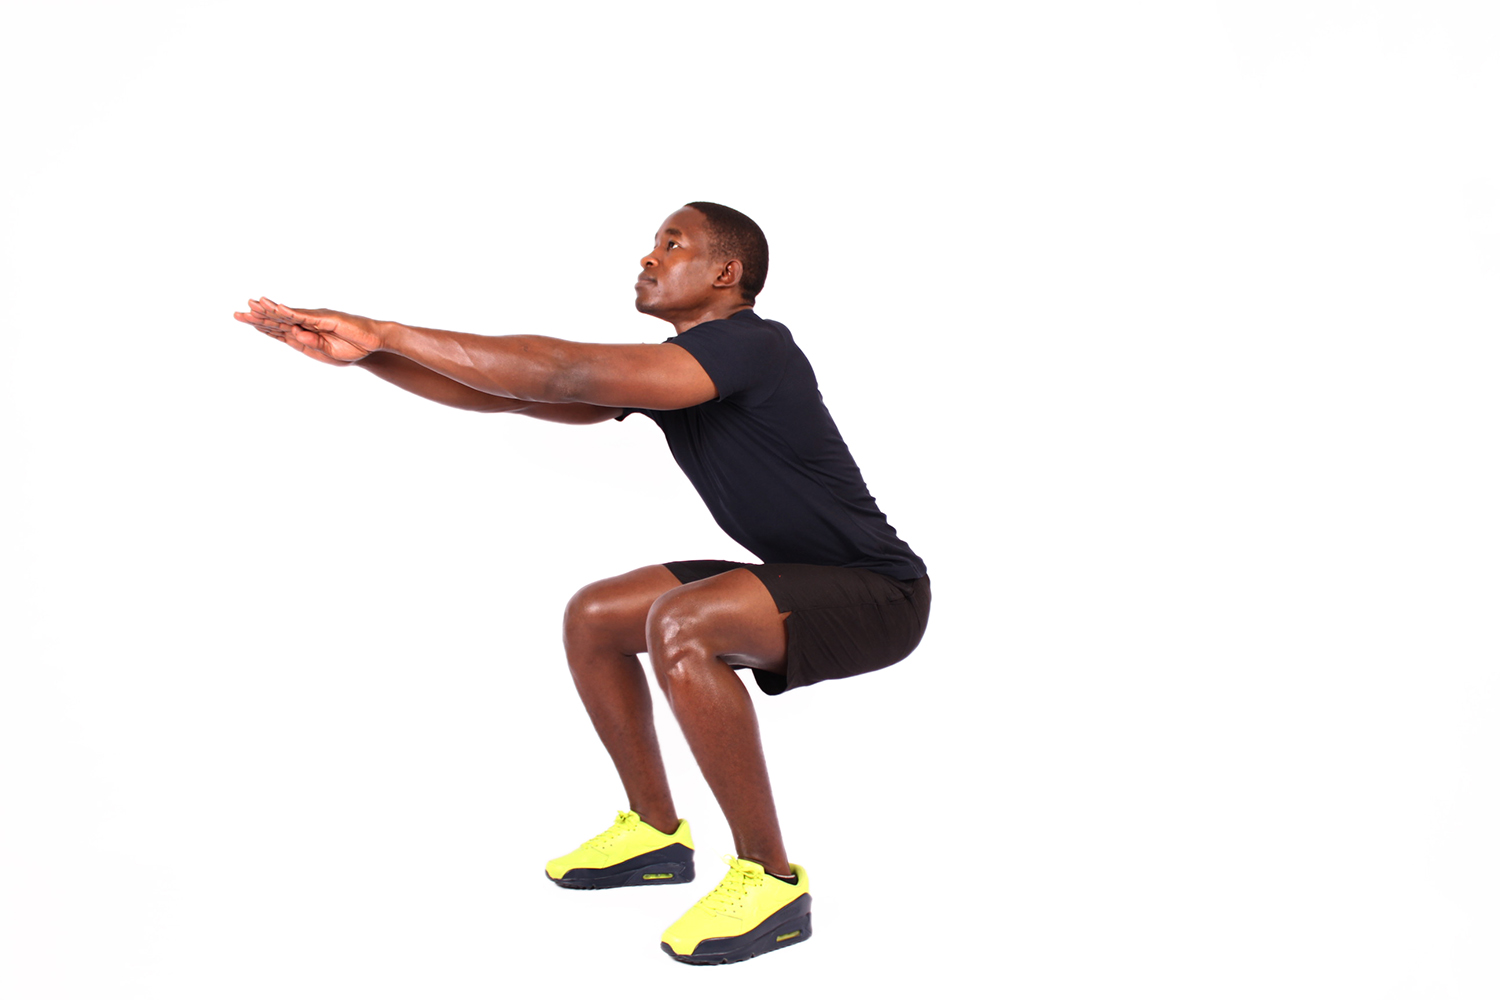 African man doing air squats lower body exercise